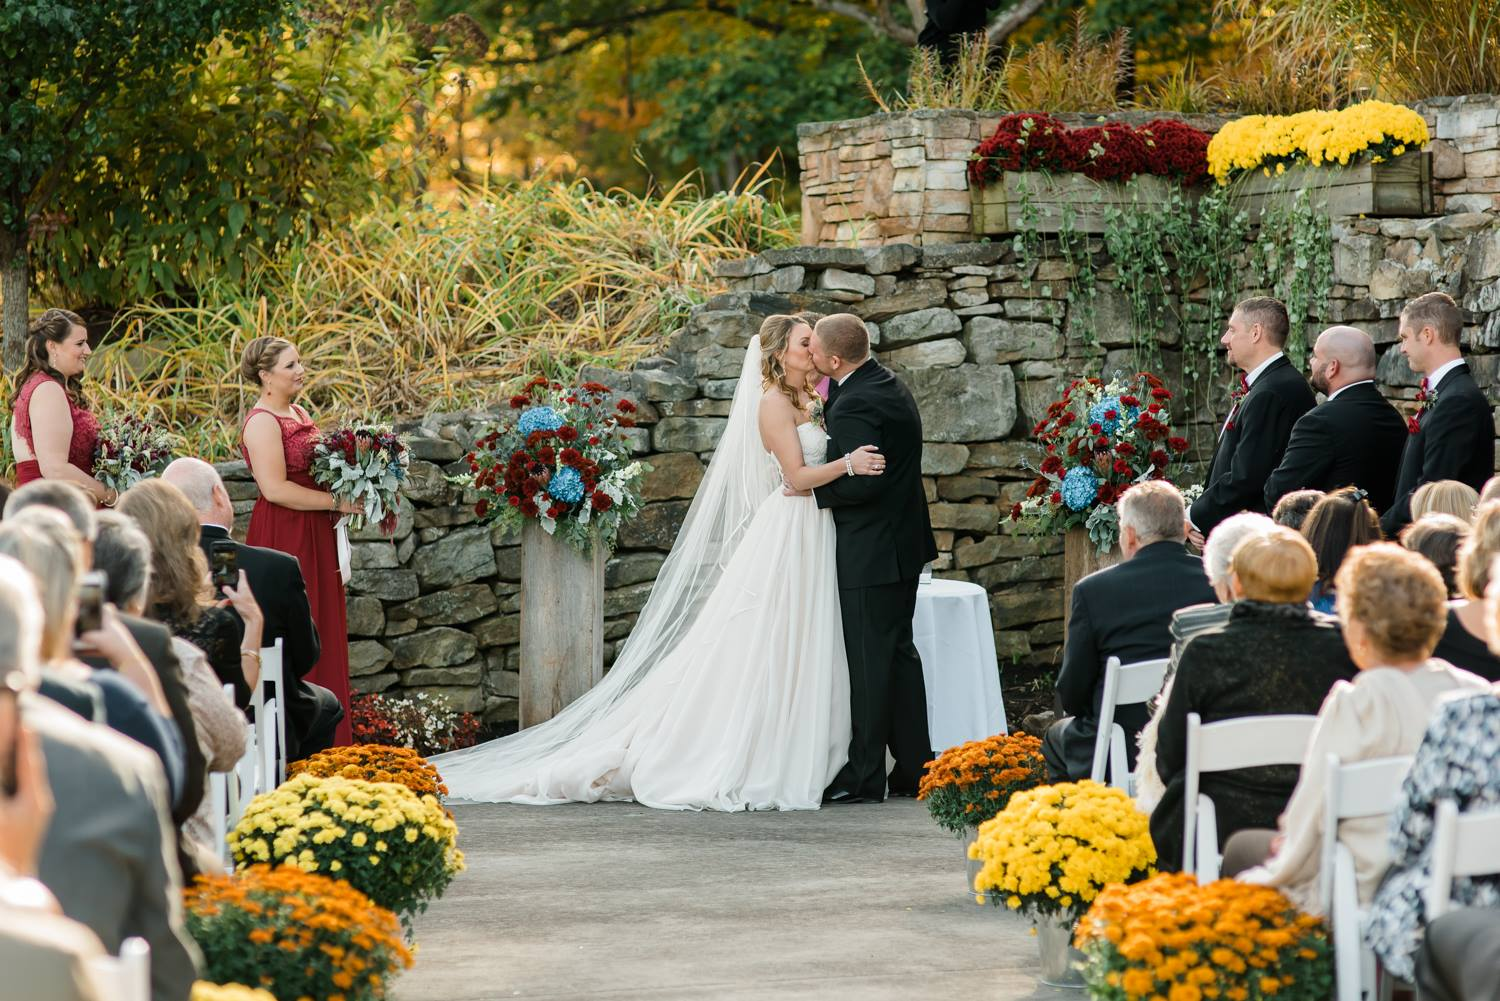 hidden-valley-resort-bells-banquets-wedding-fall-autumn-jewel-tones-peensylvania-0019.jpg